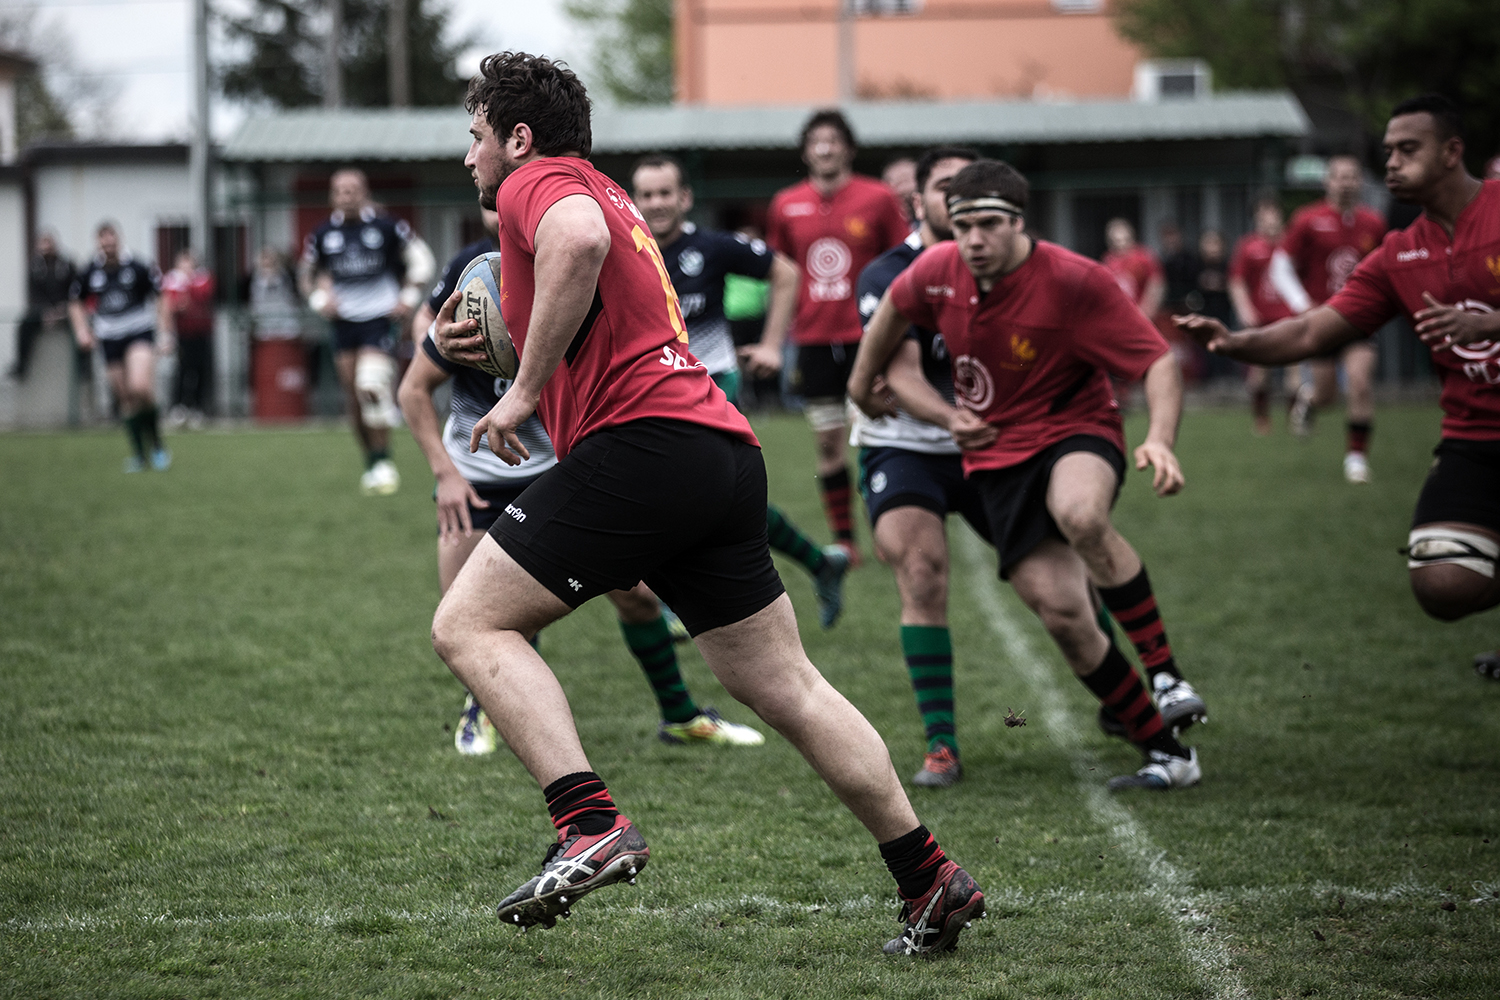 rugby_photograph_31.jpg